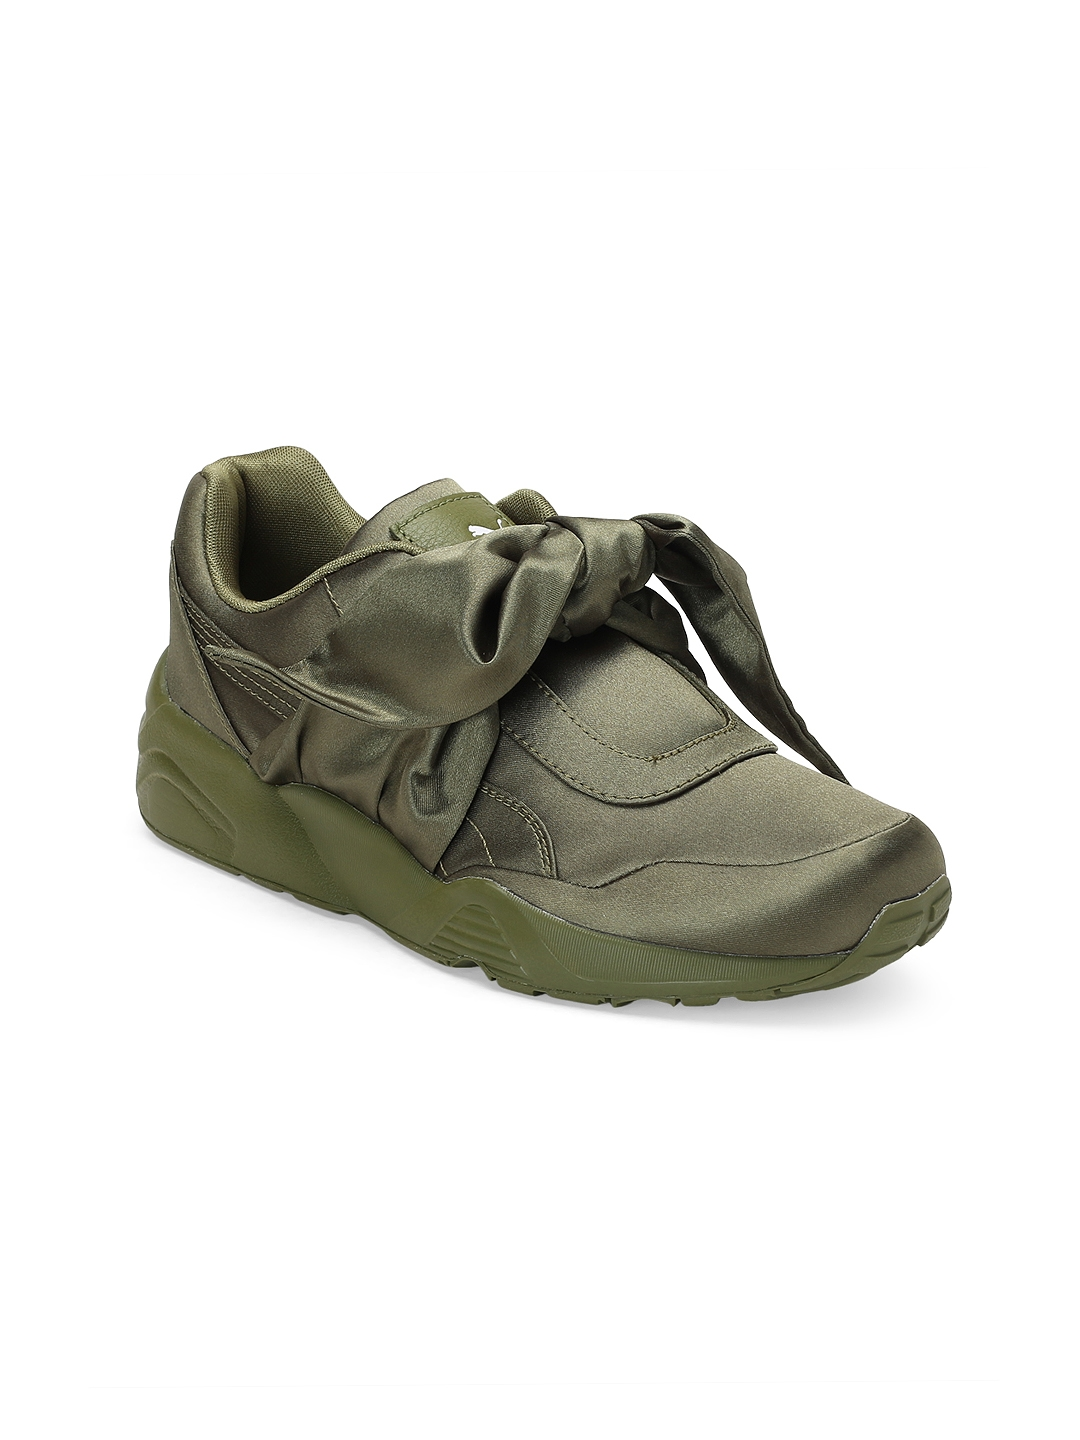 quality design 5ad0b 78de8 Puma by Rihanna Fenty Collection Women Olive Green Bow Sneakers